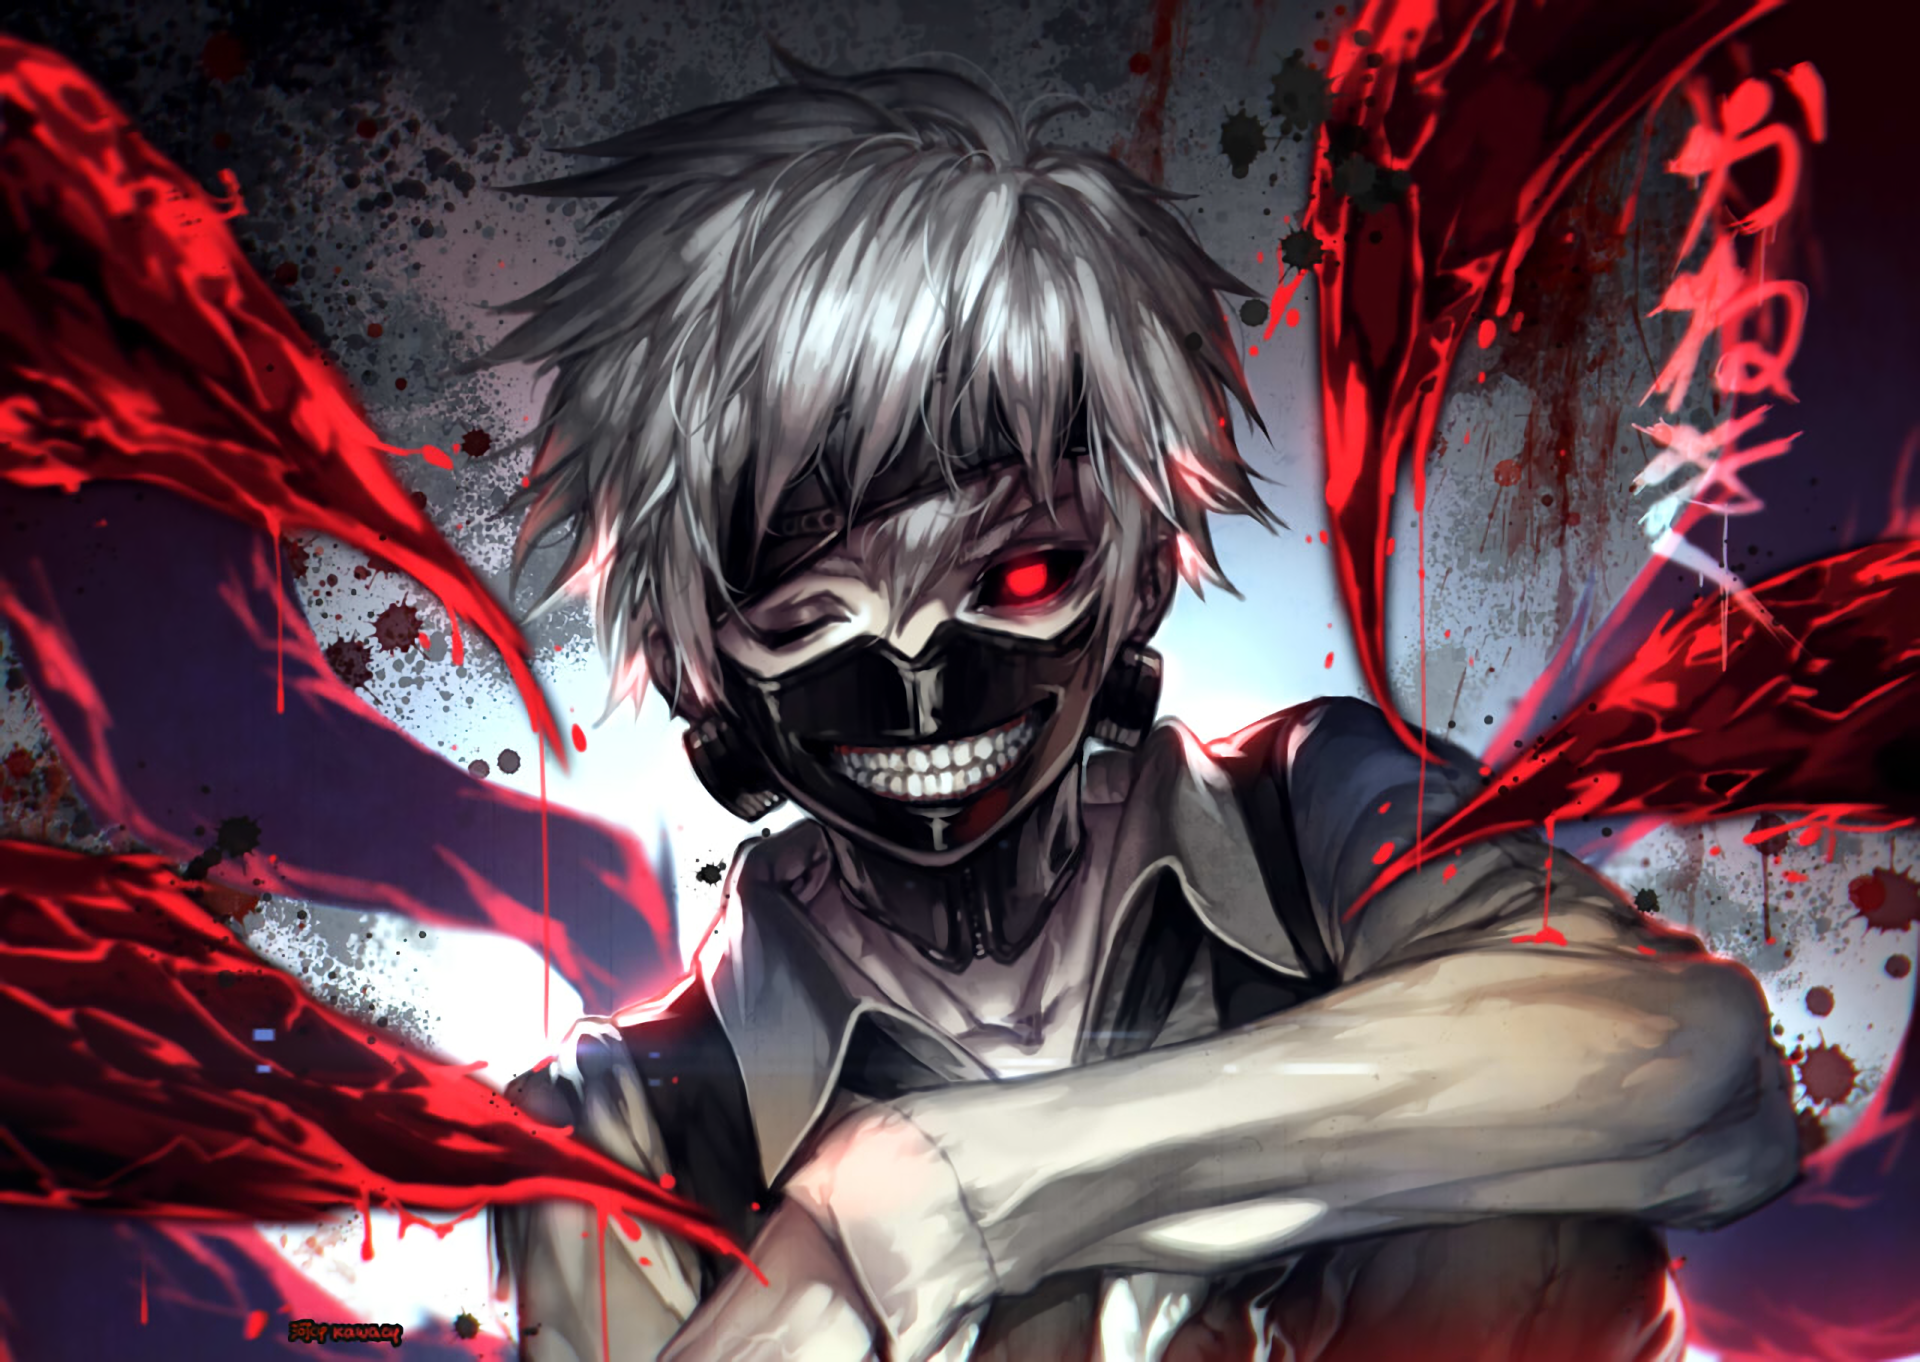 anime tokyo ghoul touka kirishima a· hd wallpaper background id541200